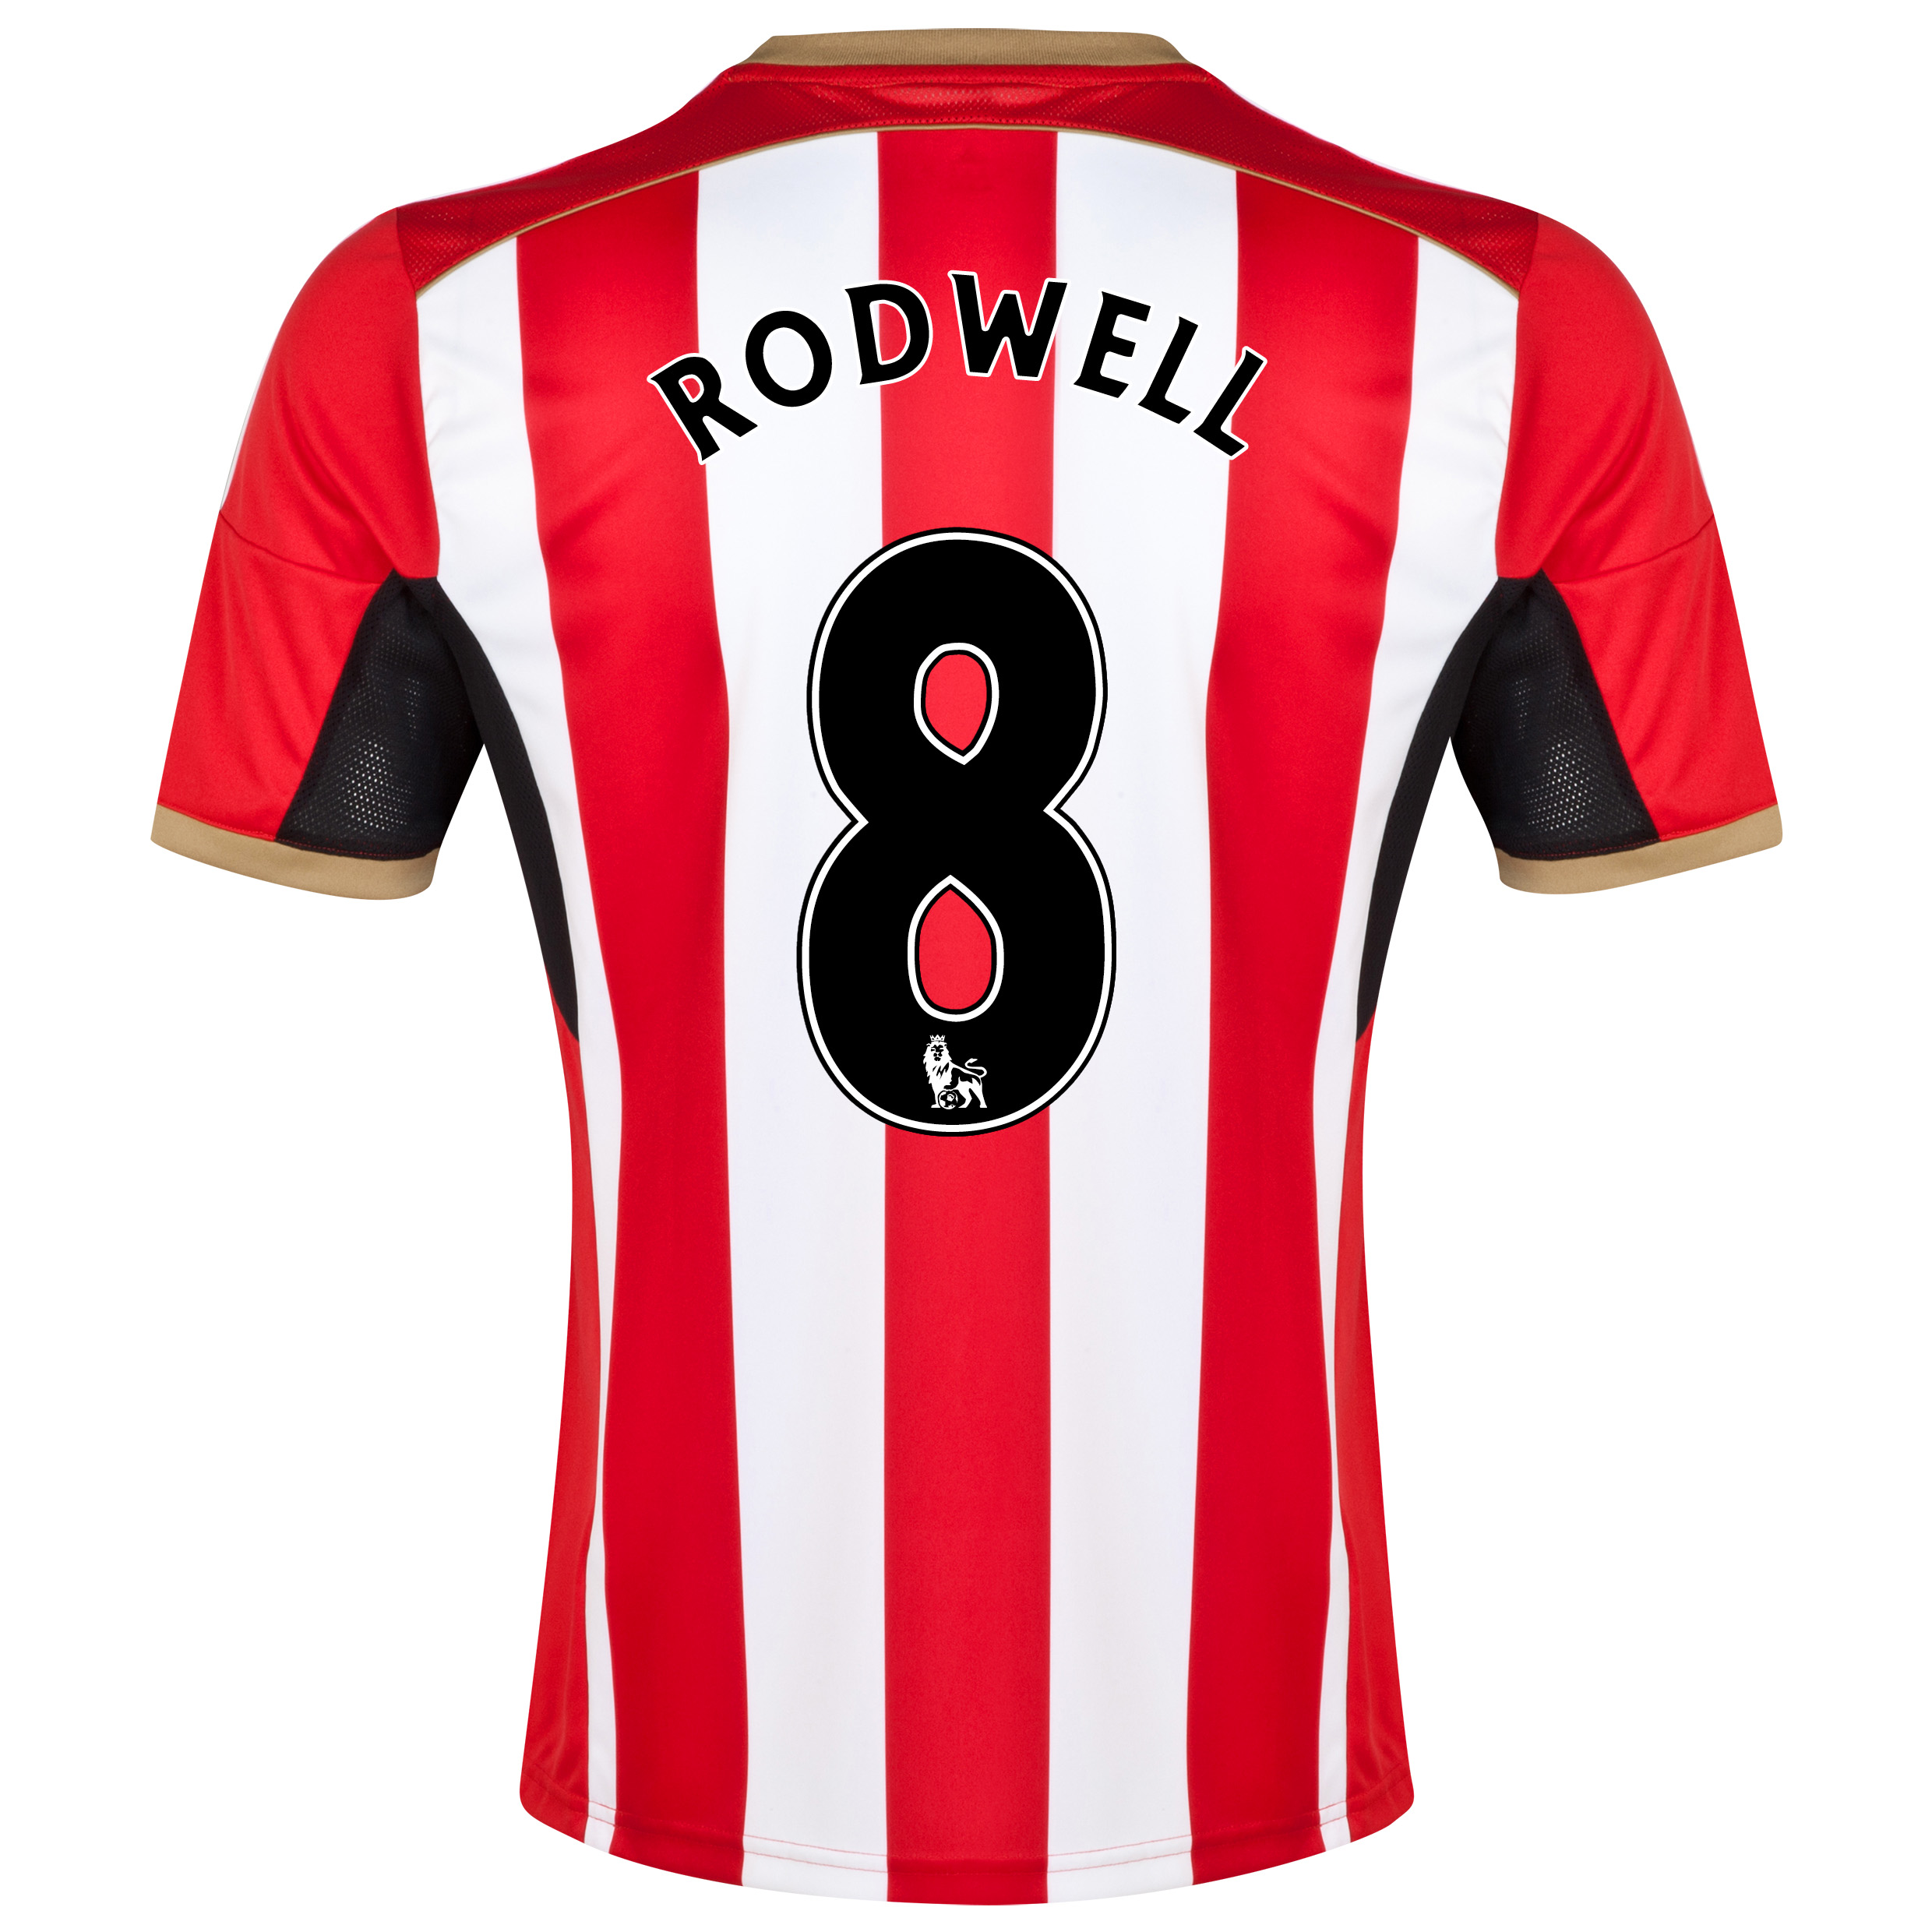 Sunderland Home Shirt 2014/15 Red with Rodwell 8 printing